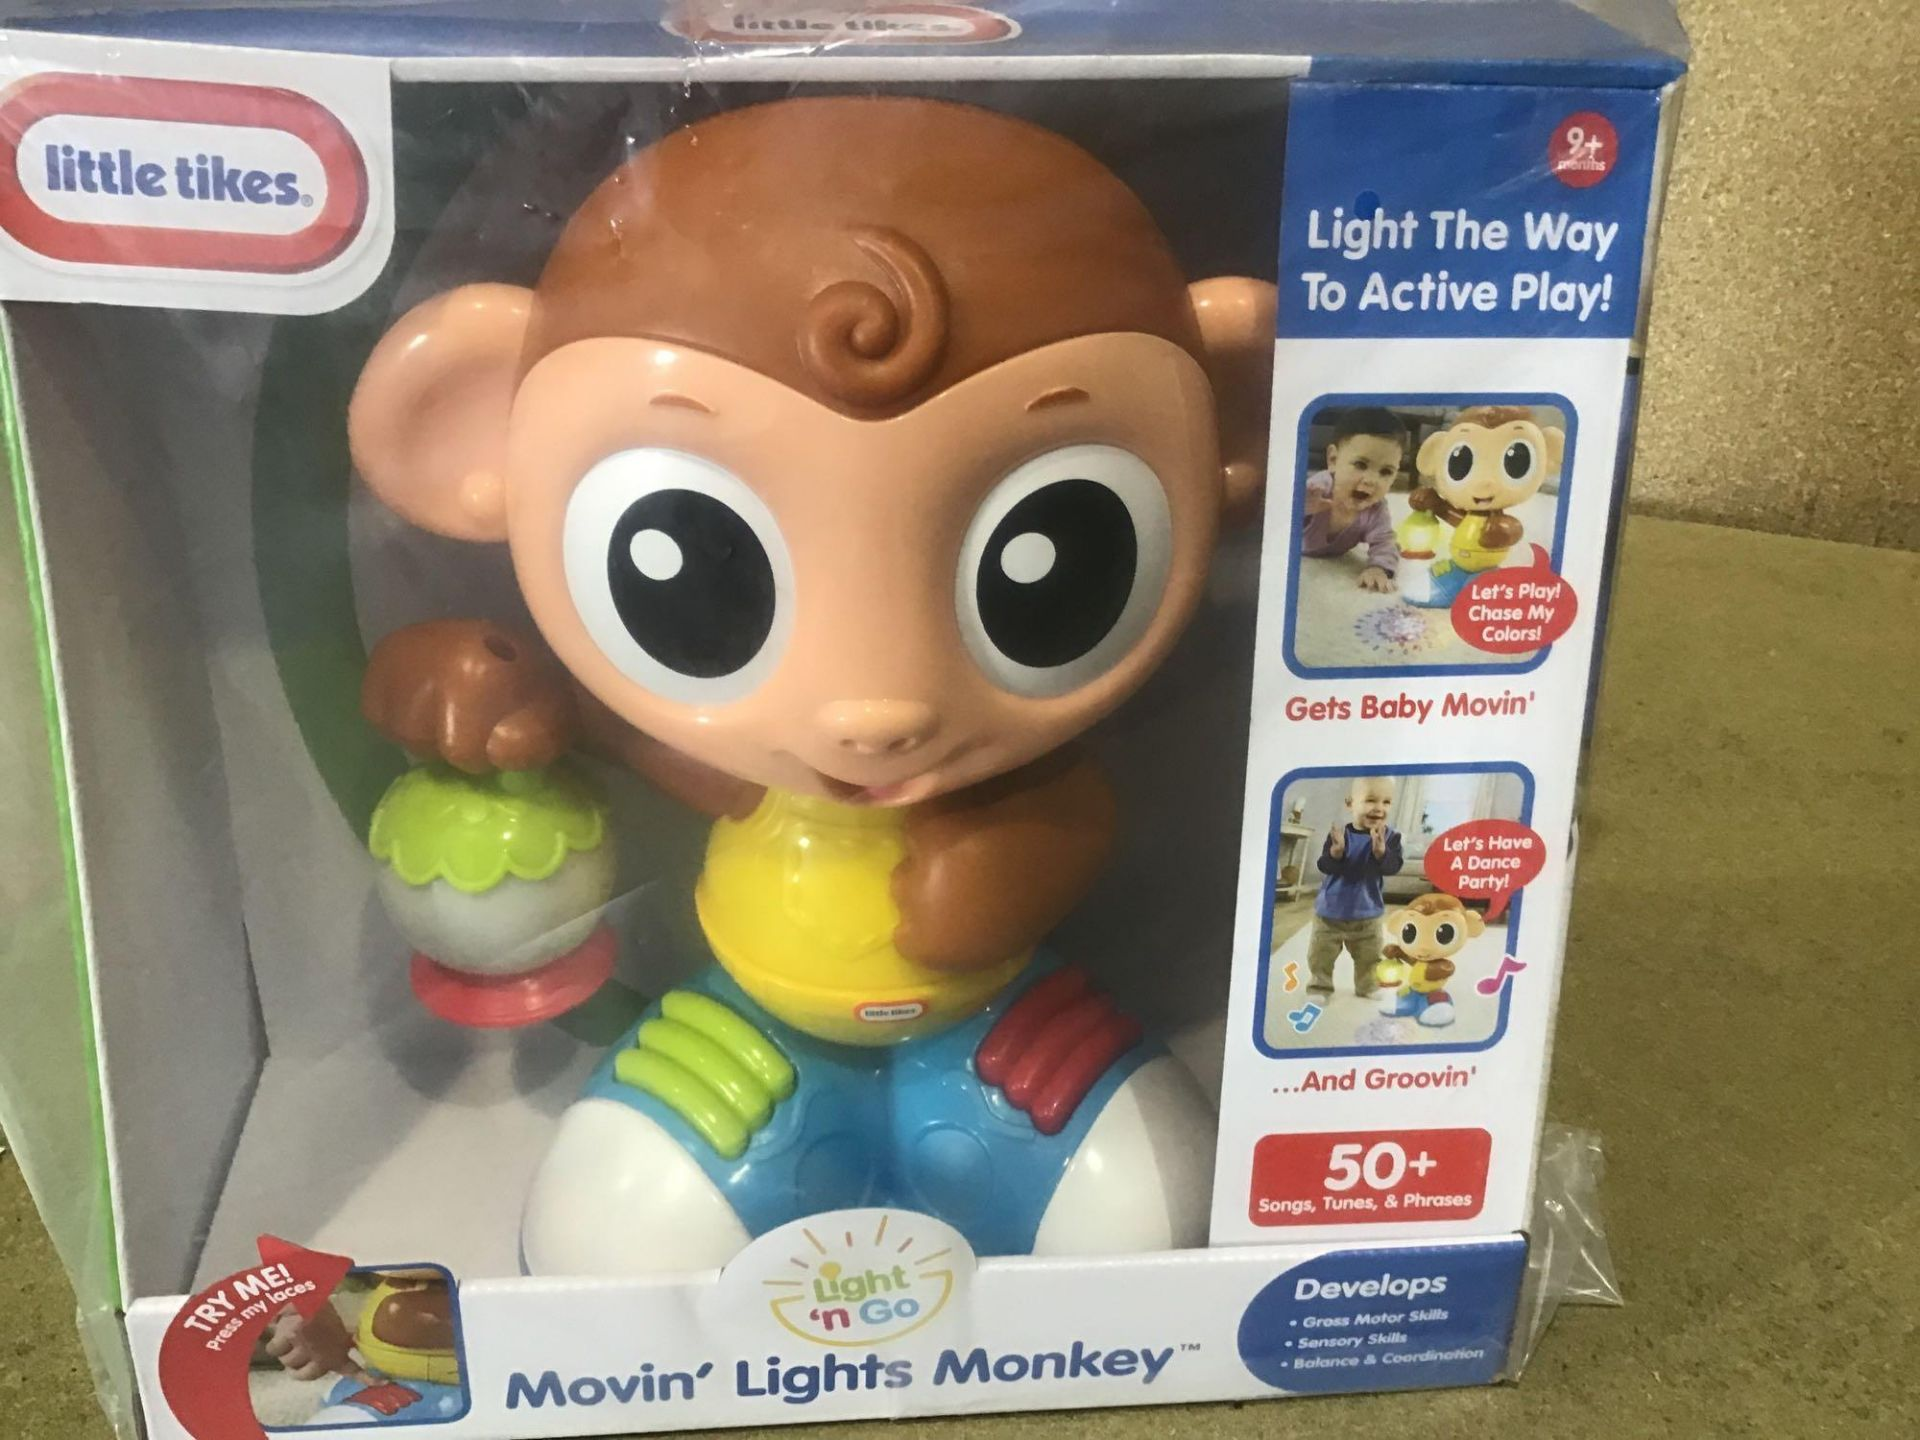 Little Tikes Moving Lights Monkey - £12.00 RRP - Image 2 of 4